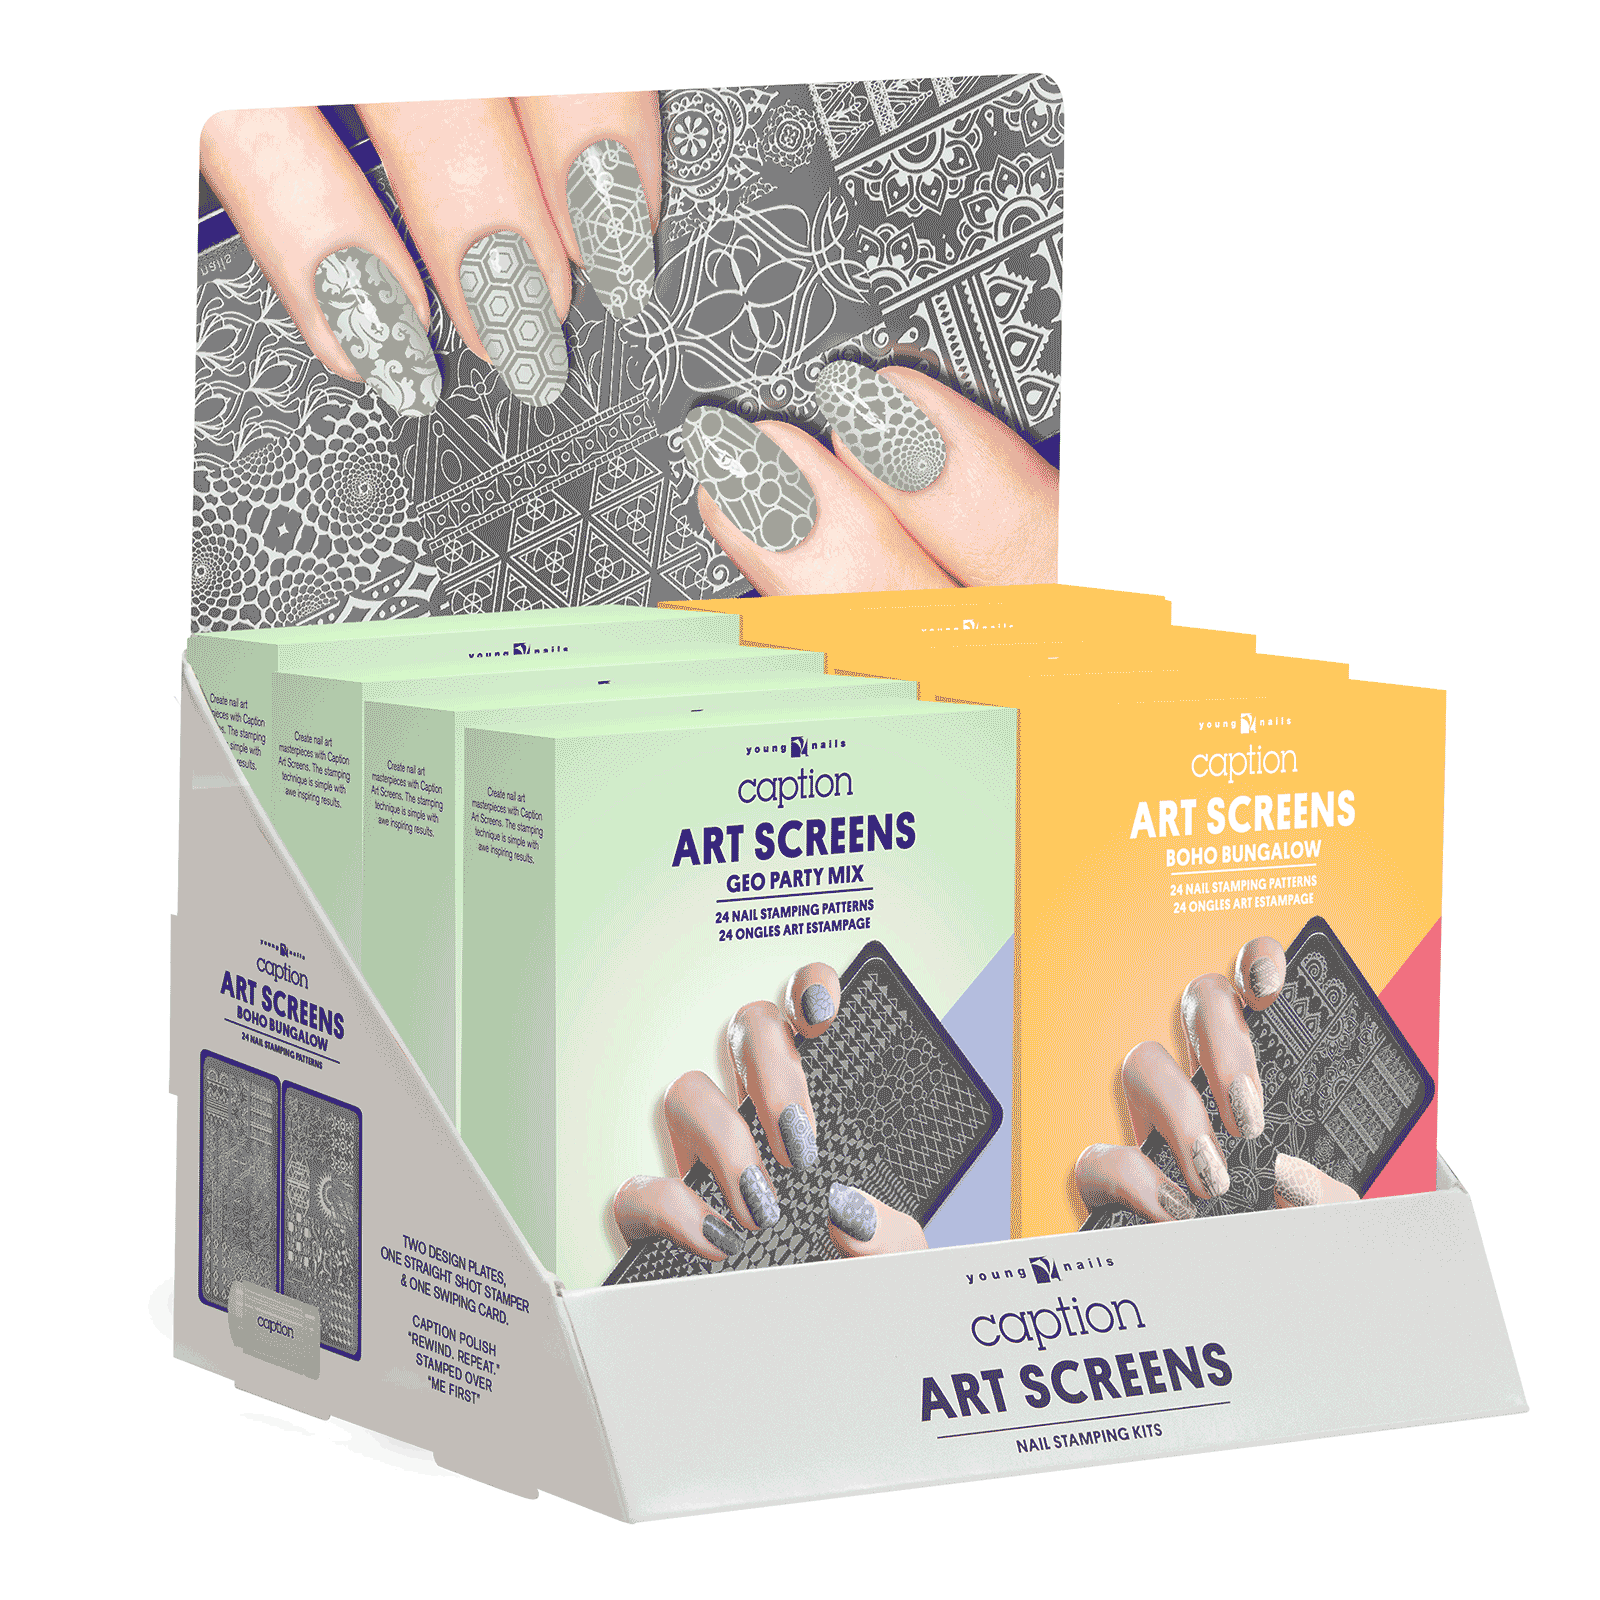 Spring Art Screen - 8 count Display - Young Nails Inc | CosmoProf